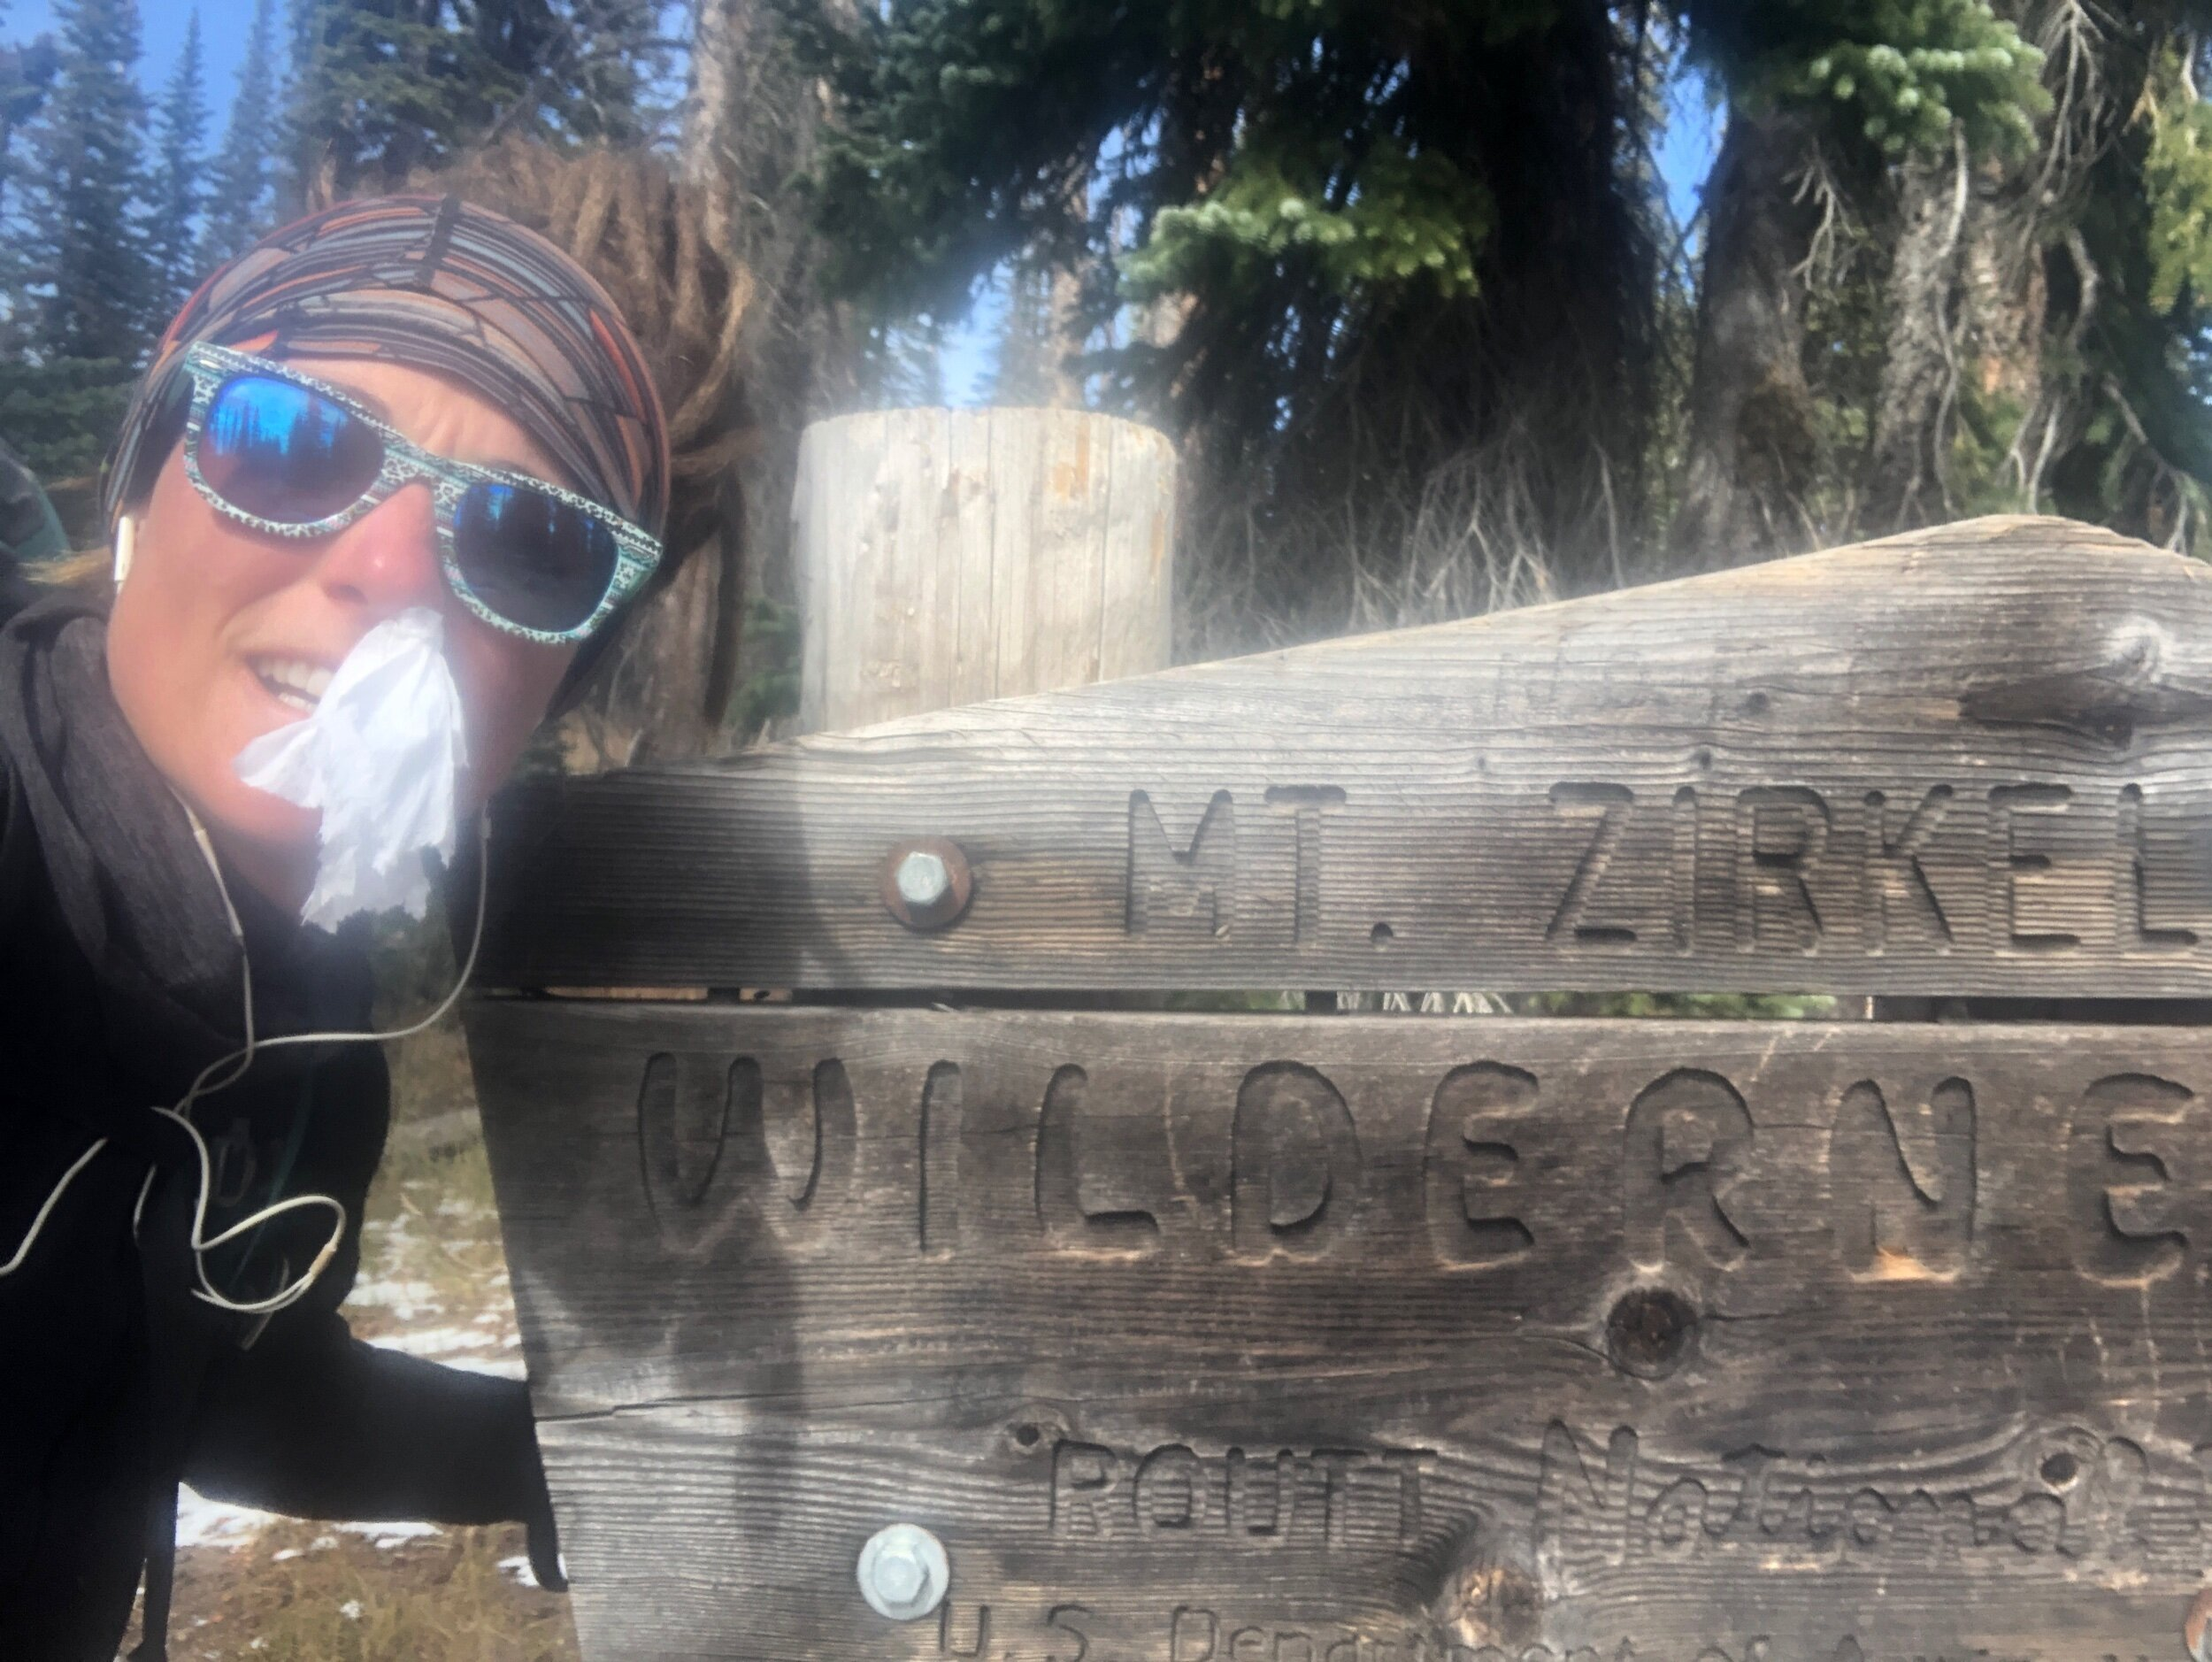 Bloody nose at Zirkel Wilderness